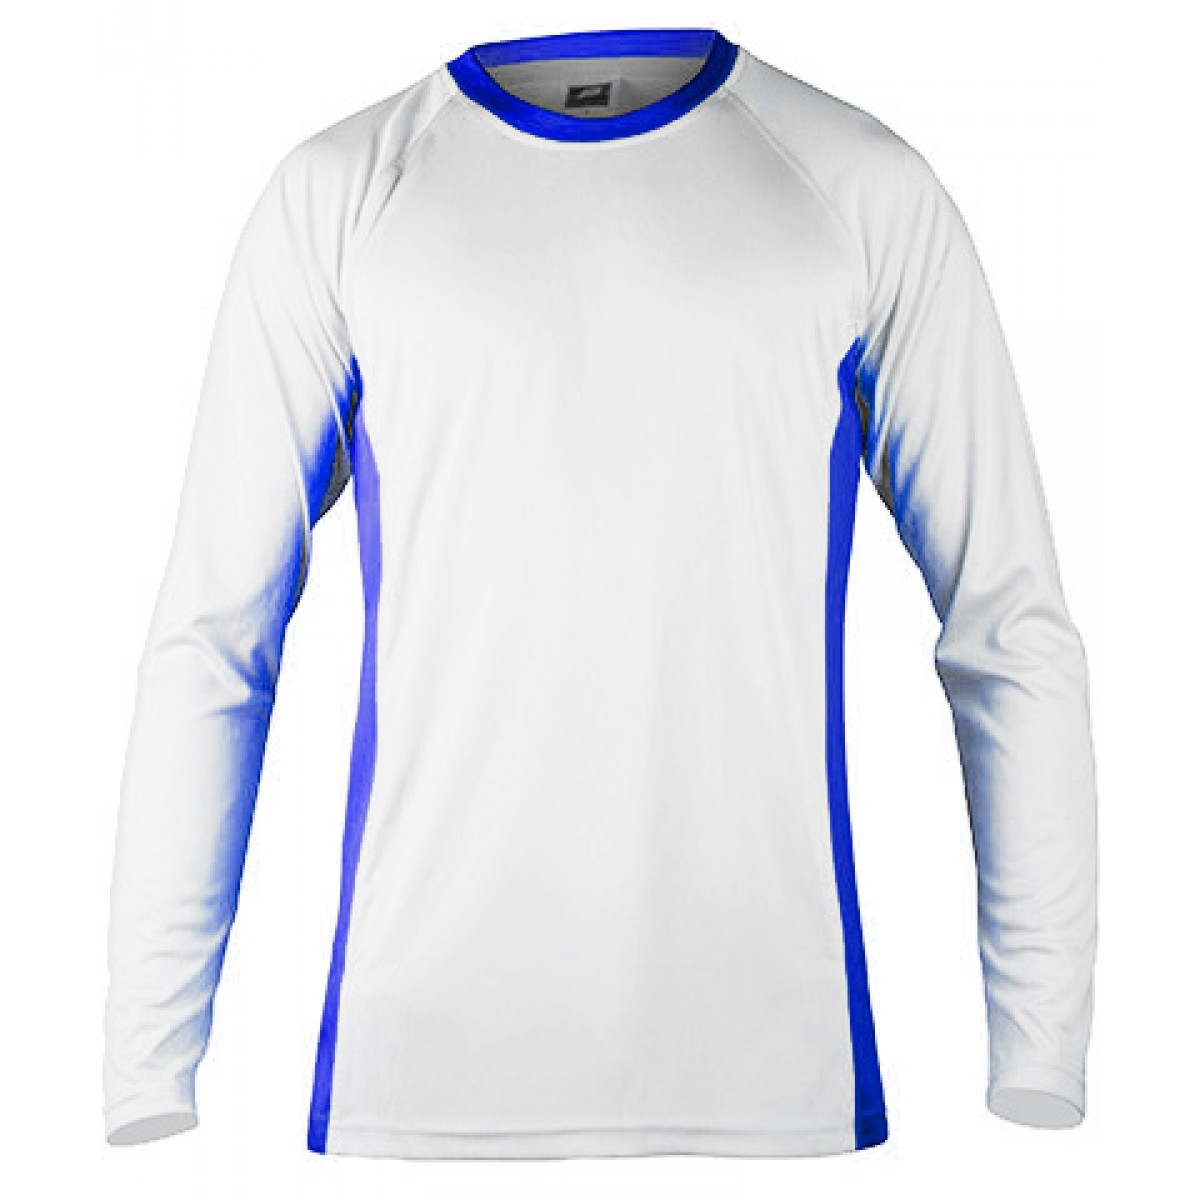 Long Sleeves Performance With Side Insert-White/Blue-L